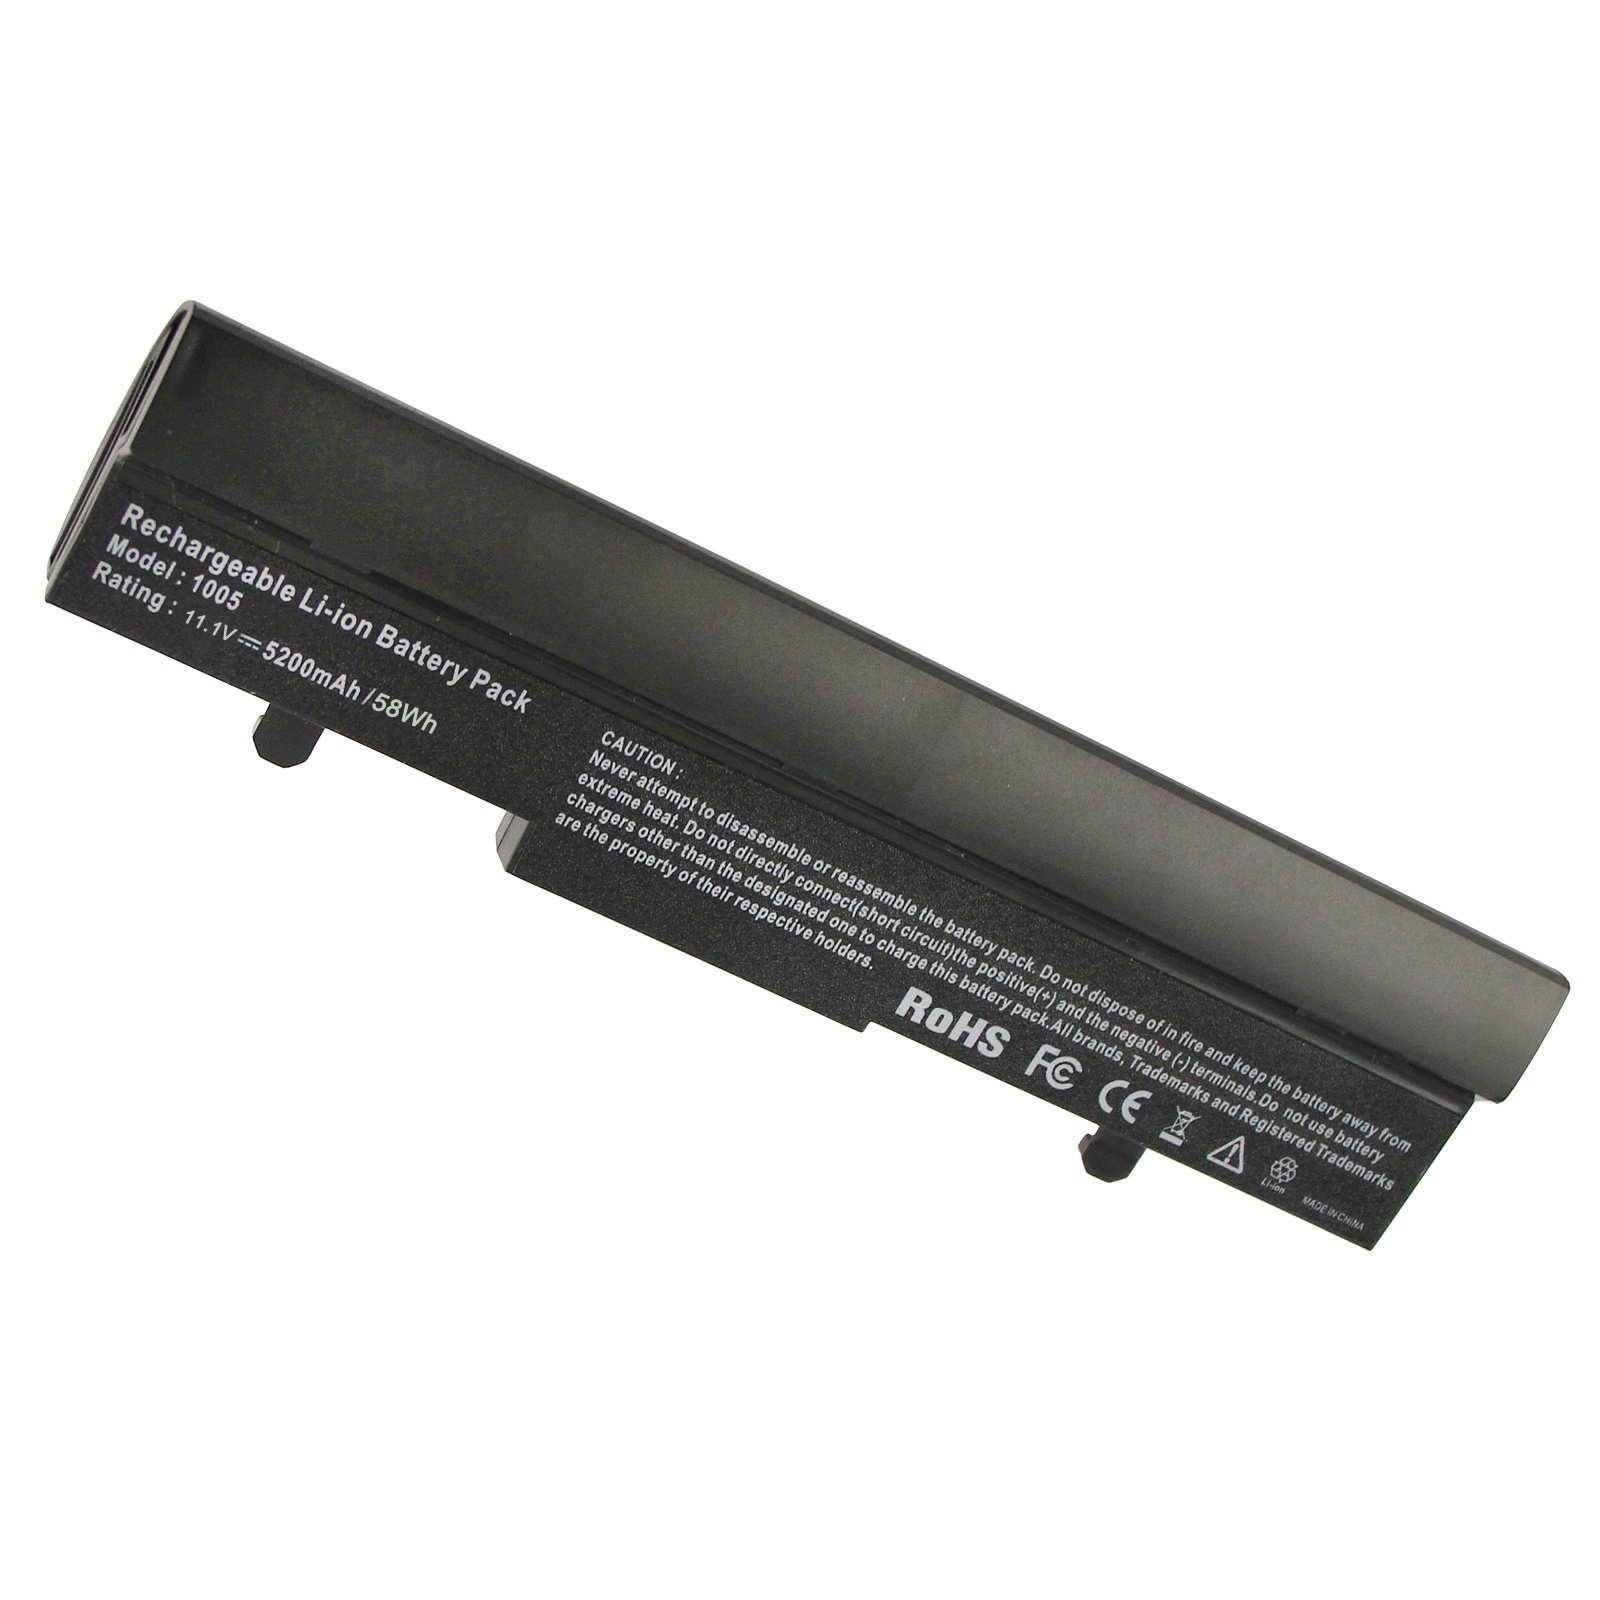 Fancy Buying New 6 Cells Laptop Battery for Asus Eee PC AL32-1005 1005HAB 1005HA 1005 1005PE 1005H 1005HAGB 1005HA-A 1101HA 1101HAB 1101HGO 1104HA 1106HA Series, also fits P/N AL31-1005 PL32-1005